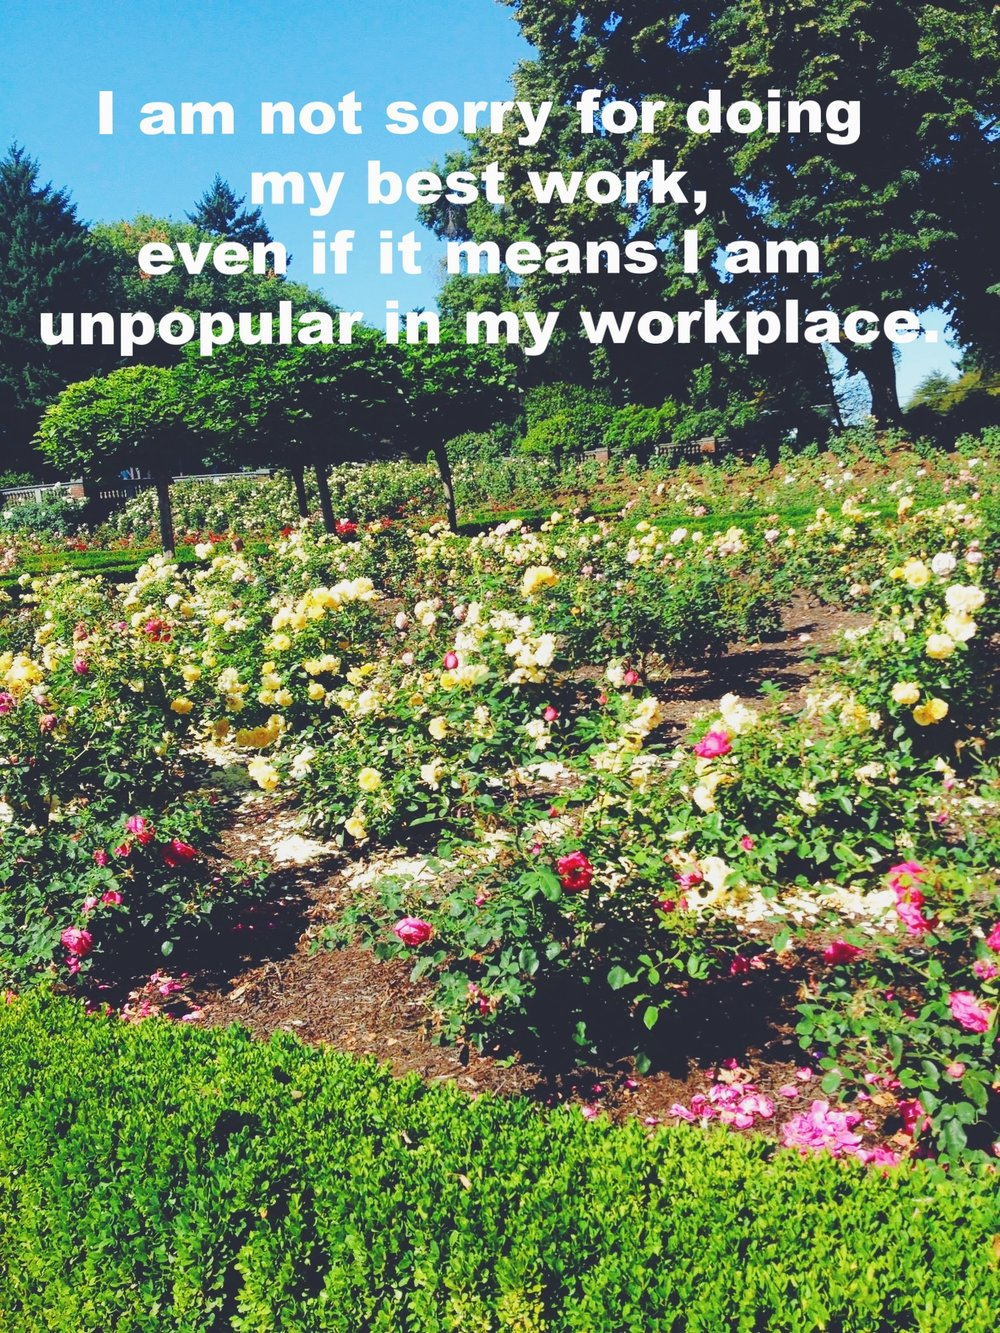 "Aurora February 17 2017 Image of a rose garden in a park. A hedge surrounds the roses and there are several short trees. ""I am not sorry for doing my best work, even if it means I am unpopular in my workplace"" is overlaid."